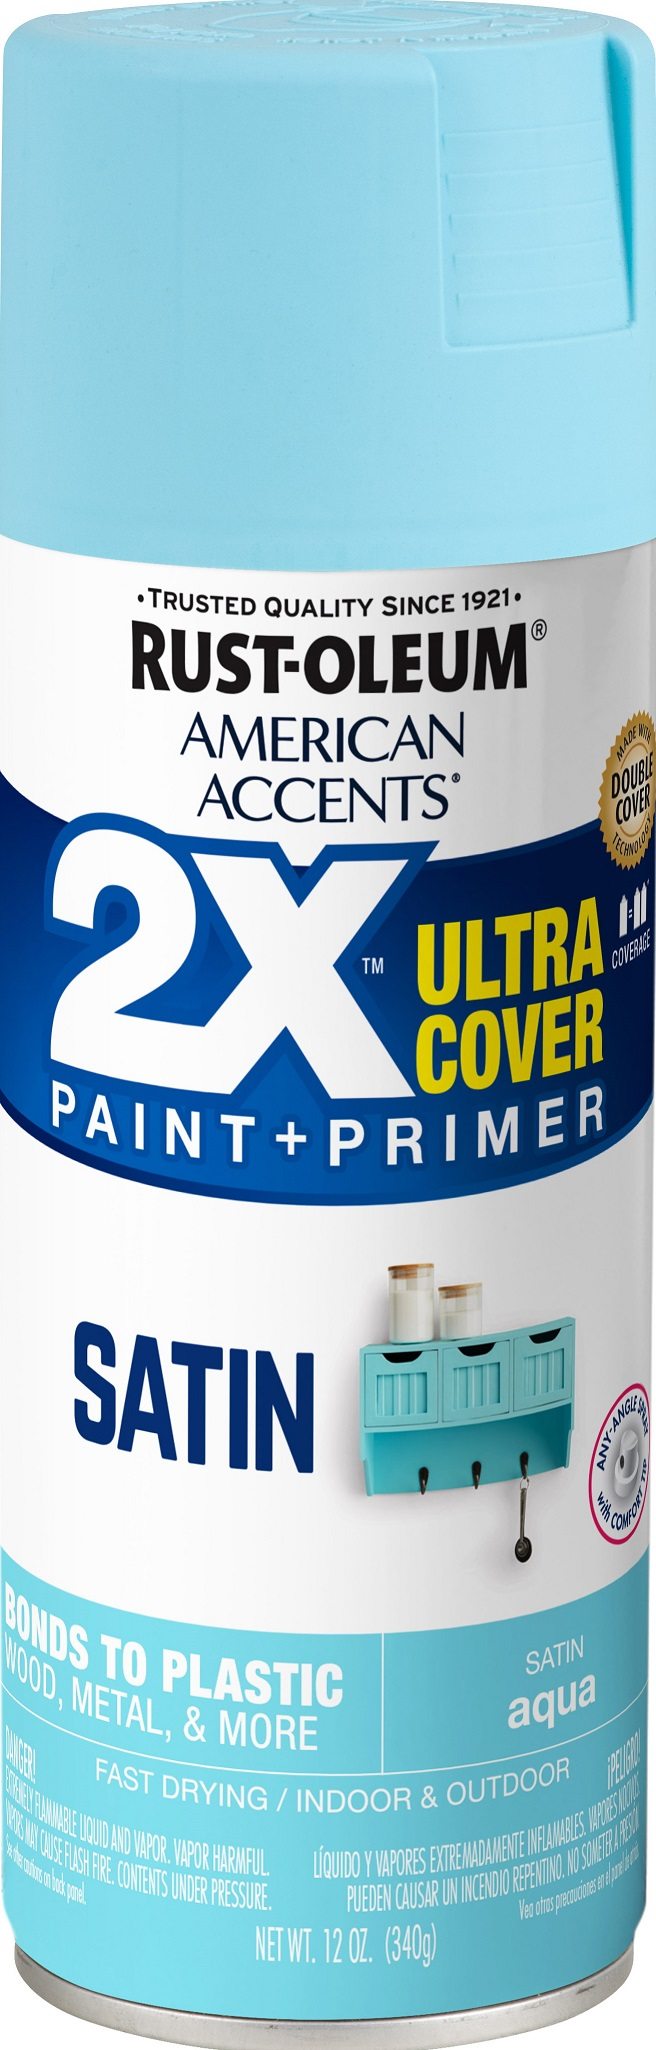 (3 Pack) Rust-Oleum American Accents Ultra Cover 2X Satin Aqua Spray Paint and Primer in 1, 12 oz